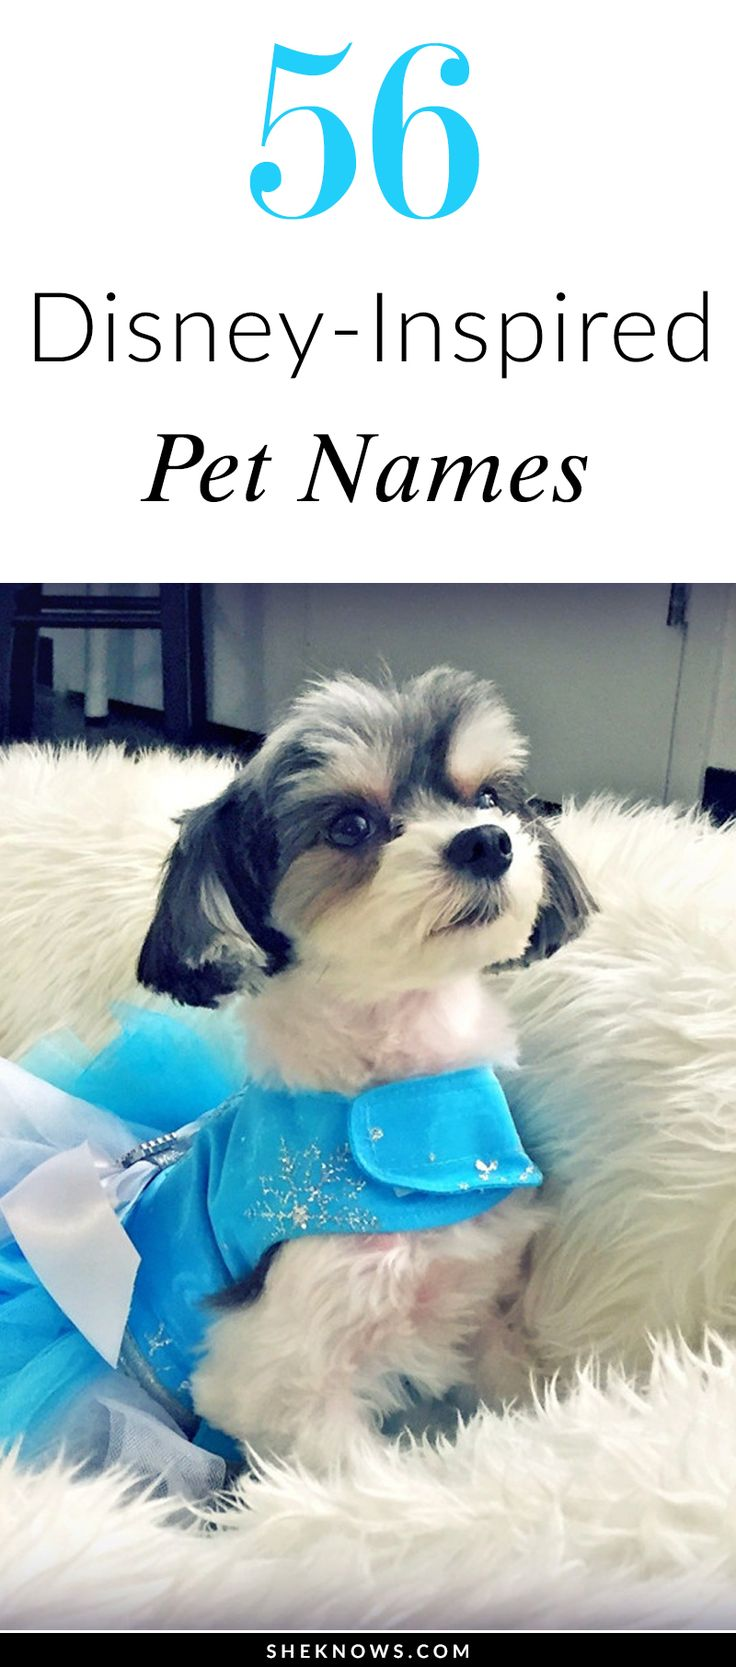 56 Disney-inspired names for your dog or cat.